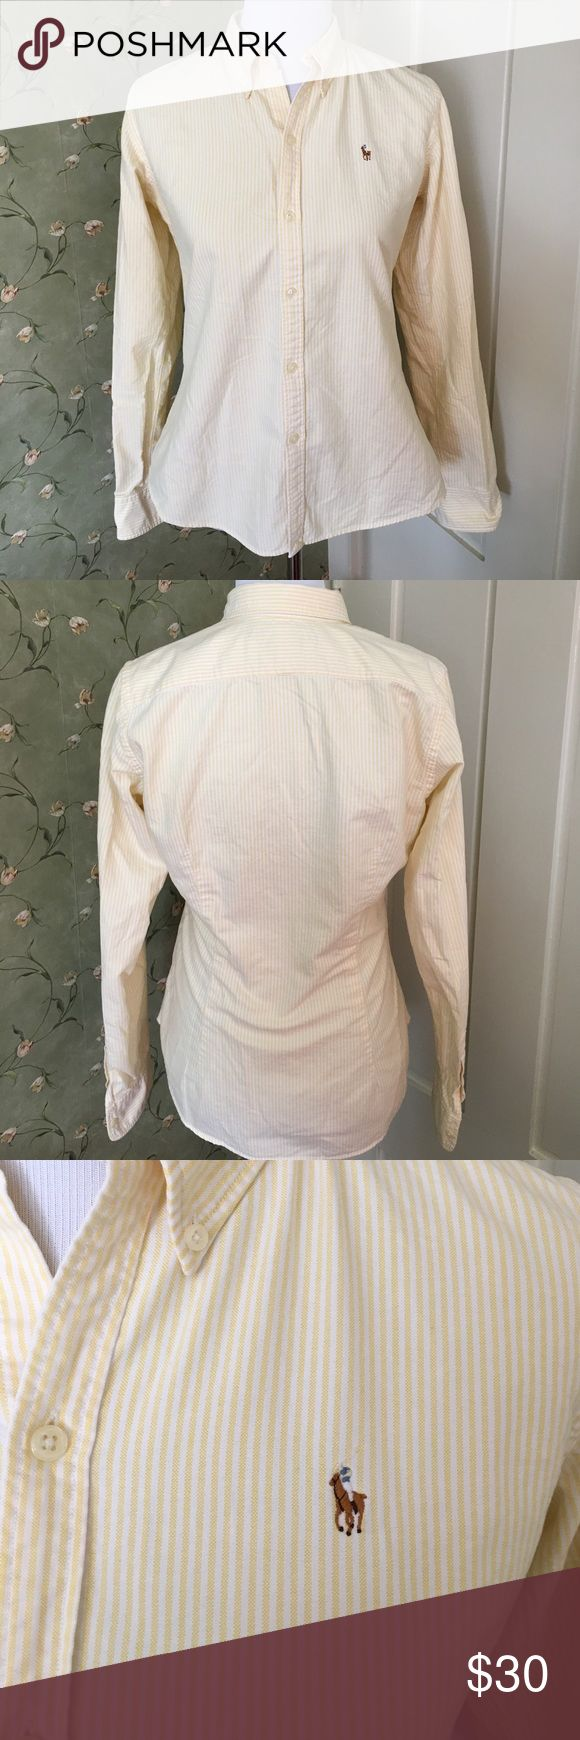 Ralph Lauren Slim Fit Oxford Shirt Ralph Lauren Slim Fit Oxford Shirt. Yellow and White striped. In like new condition. No rips or stains. Great shirt for casual days with jeans at work. Ralph Lauren Tops Button Down Shirts